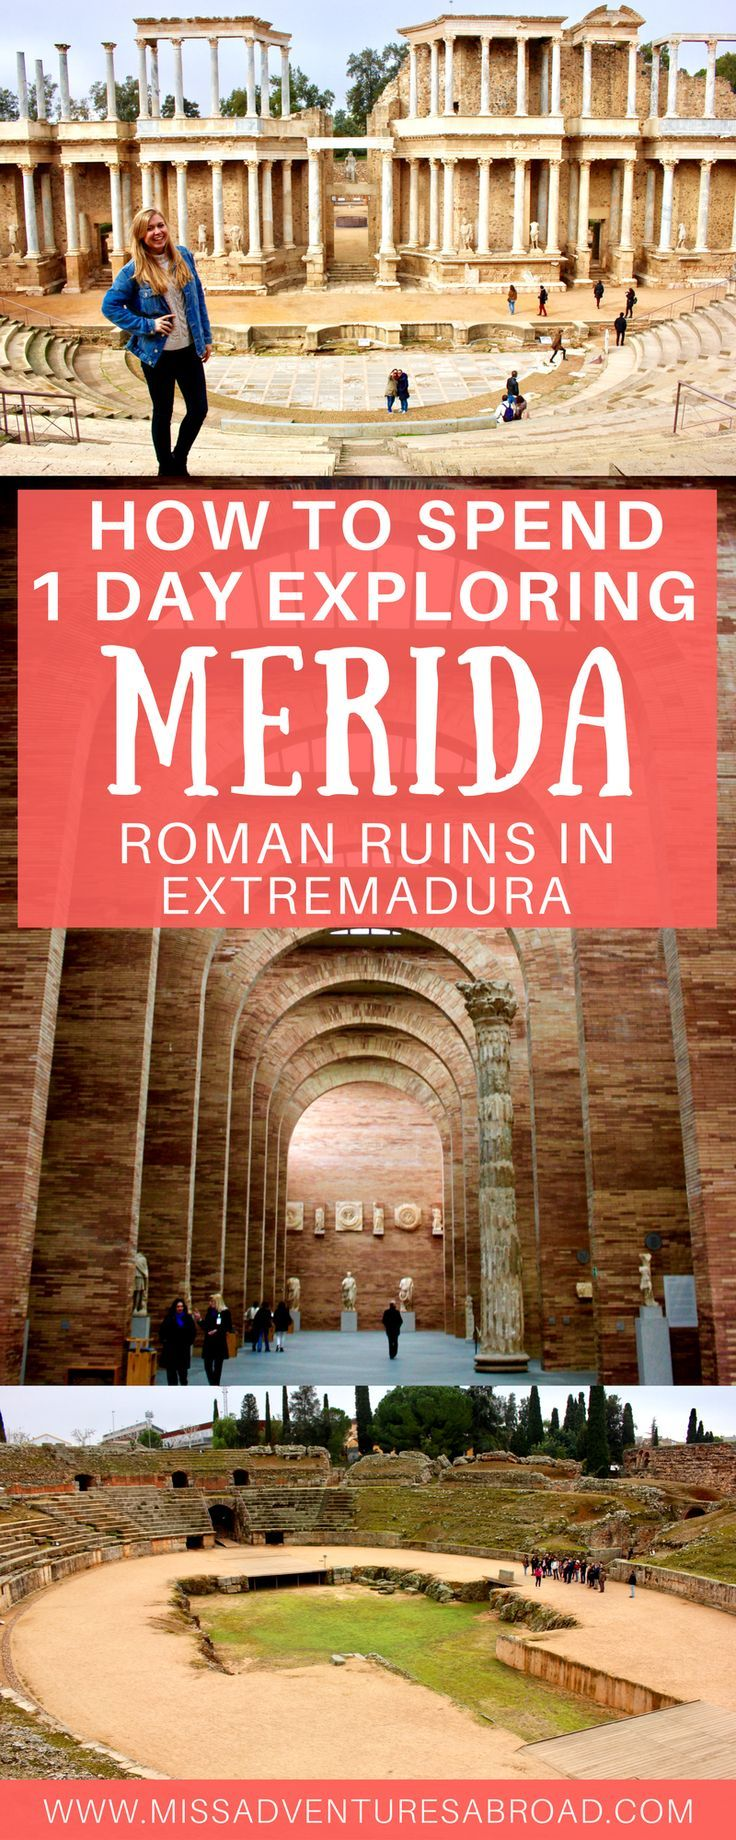 How to Spend 1 Day in Mérida: Exploring Extremadura's Roman Ruins · Plan a perfect day trip to the best Roman ruins in Spain. Mérida, Extremadura is known for its incredible ancient Roman theater, amphitheater, aqueduct, and other ruins. Discover all there is to see and do in this historic Spanish town.